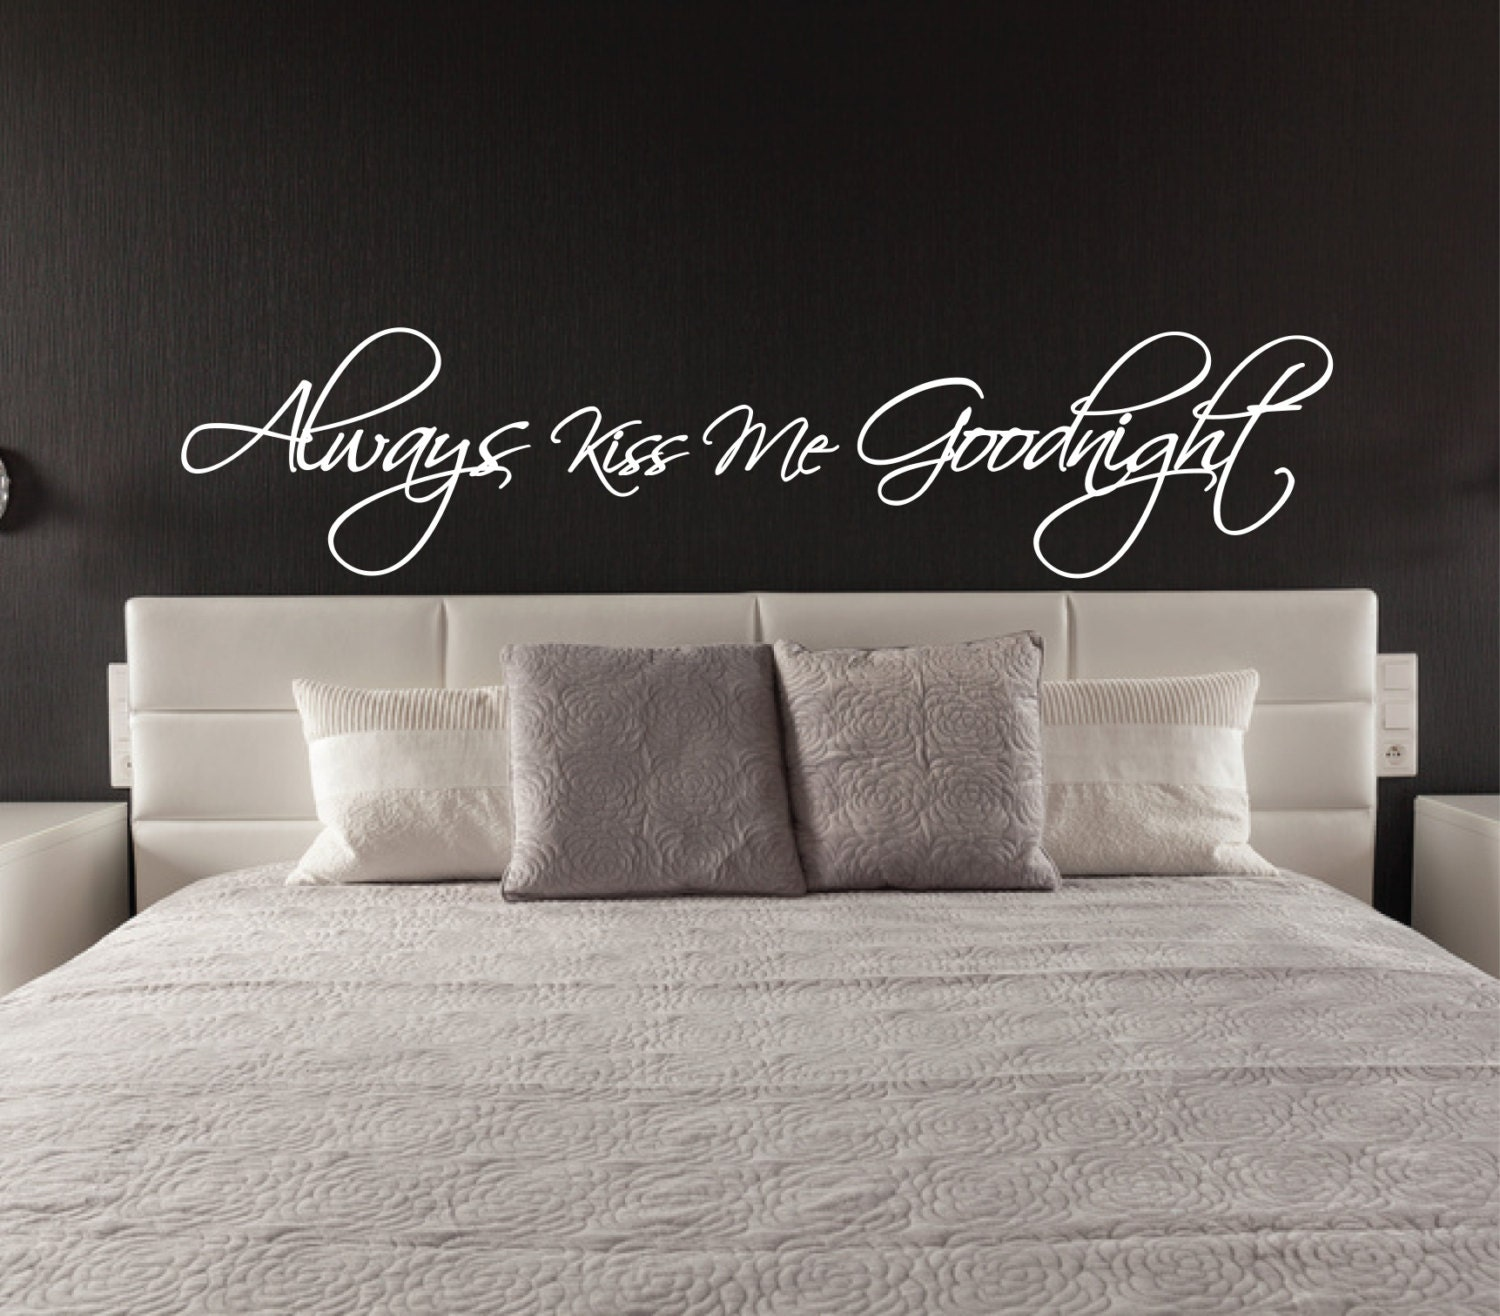 Above bed wall sticker always kiss me goodnight l over bed for Interior design bedroom quotes